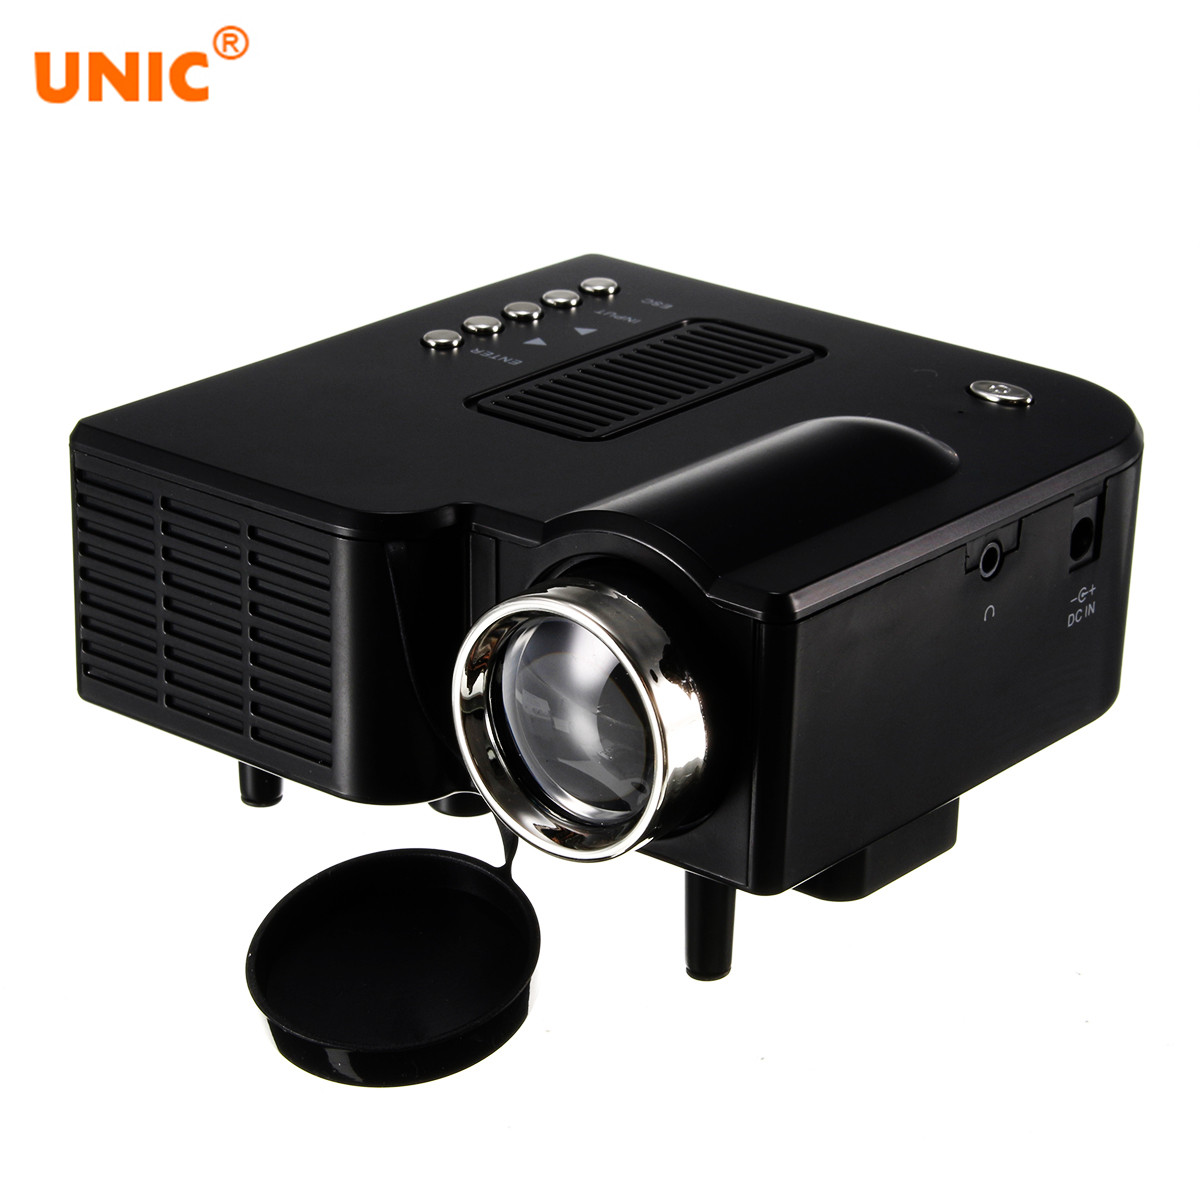 LED Projector UNIC UC28+ Portable Cinema Theater USB/SD/AV Input Mini Entertainment Projector Black/ White US/AU проектор unic gm60a